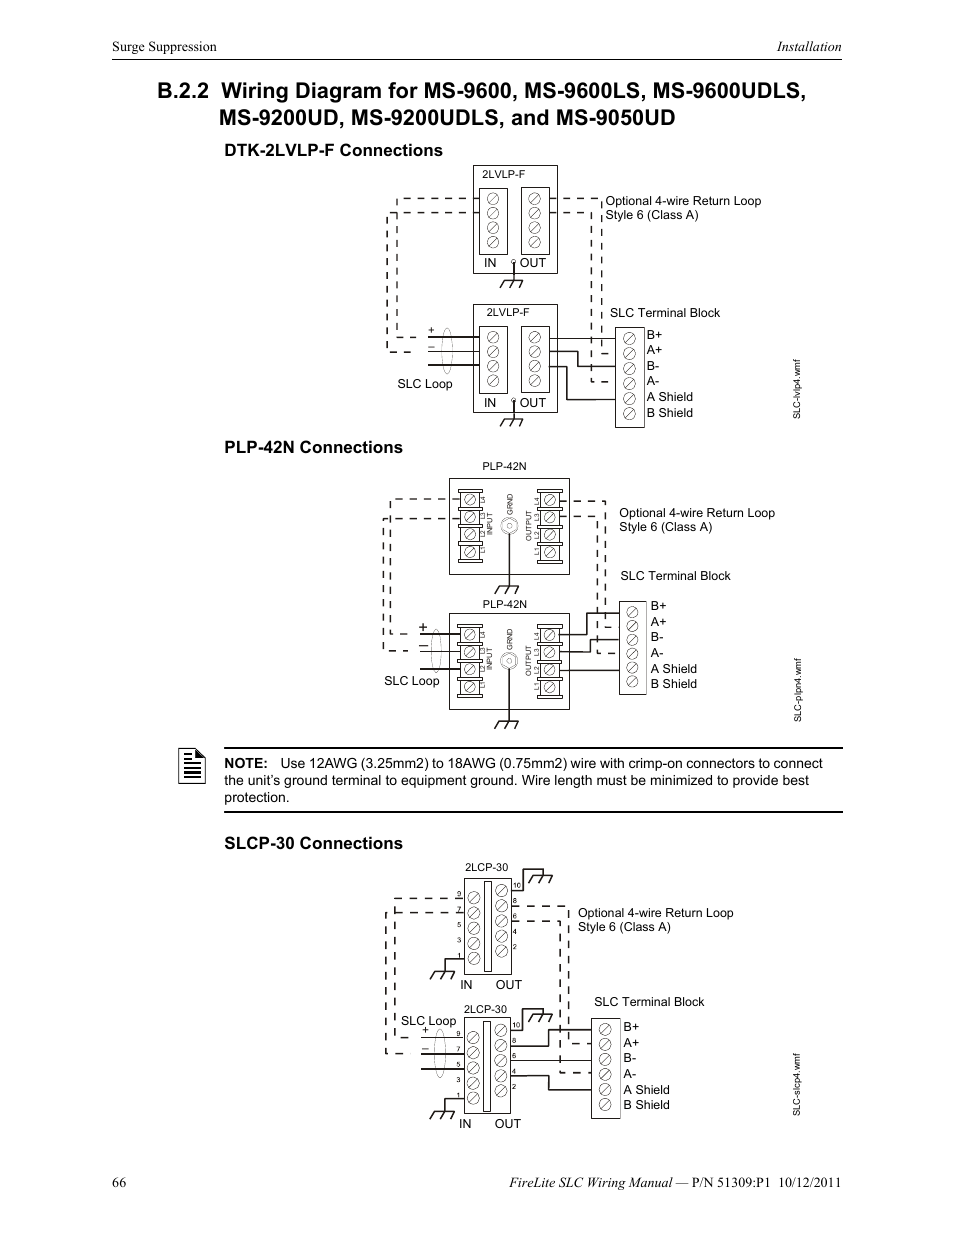 fire lite slc intelligent control panel wiring manual page66 dtk 2lvlp f connections, plp 42n connections, slcp 30 connections Fire Lite by Honeywell at n-0.co